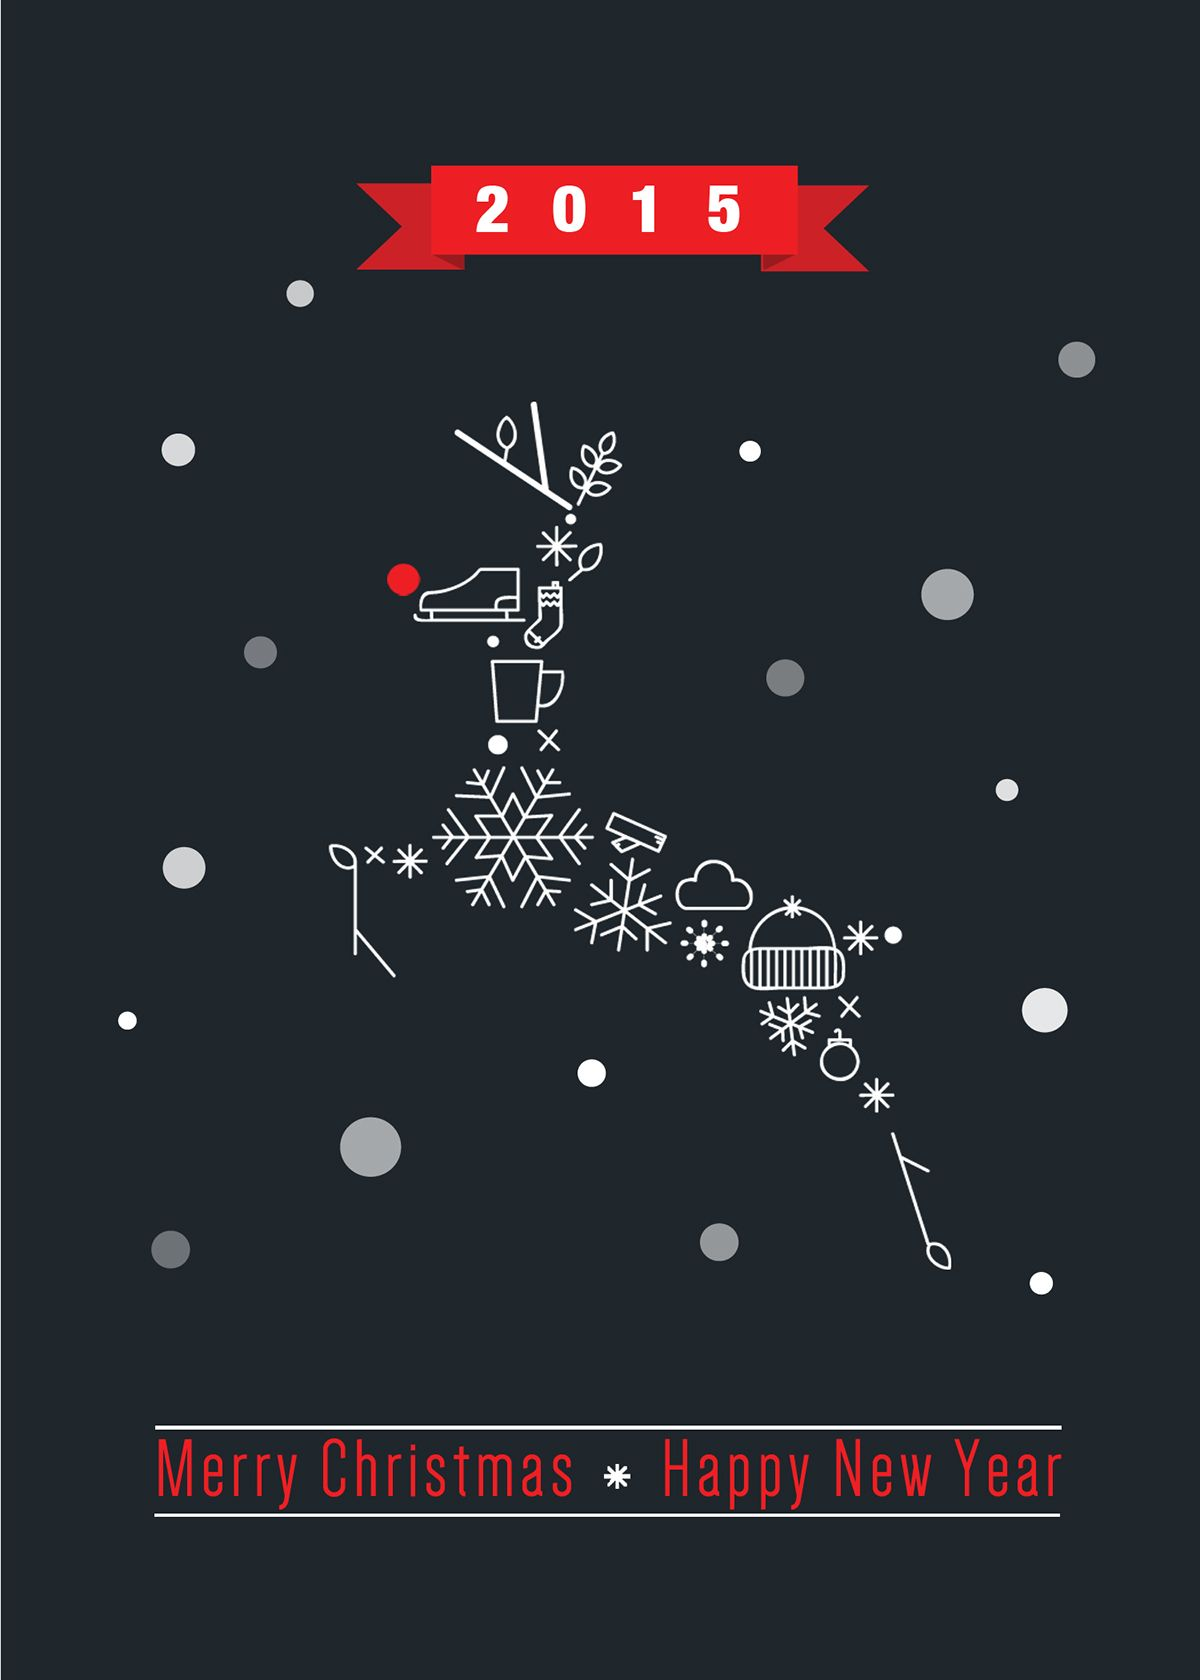 50 Christmas Designs To Inspire Your 2015 Holiday Message Design 3